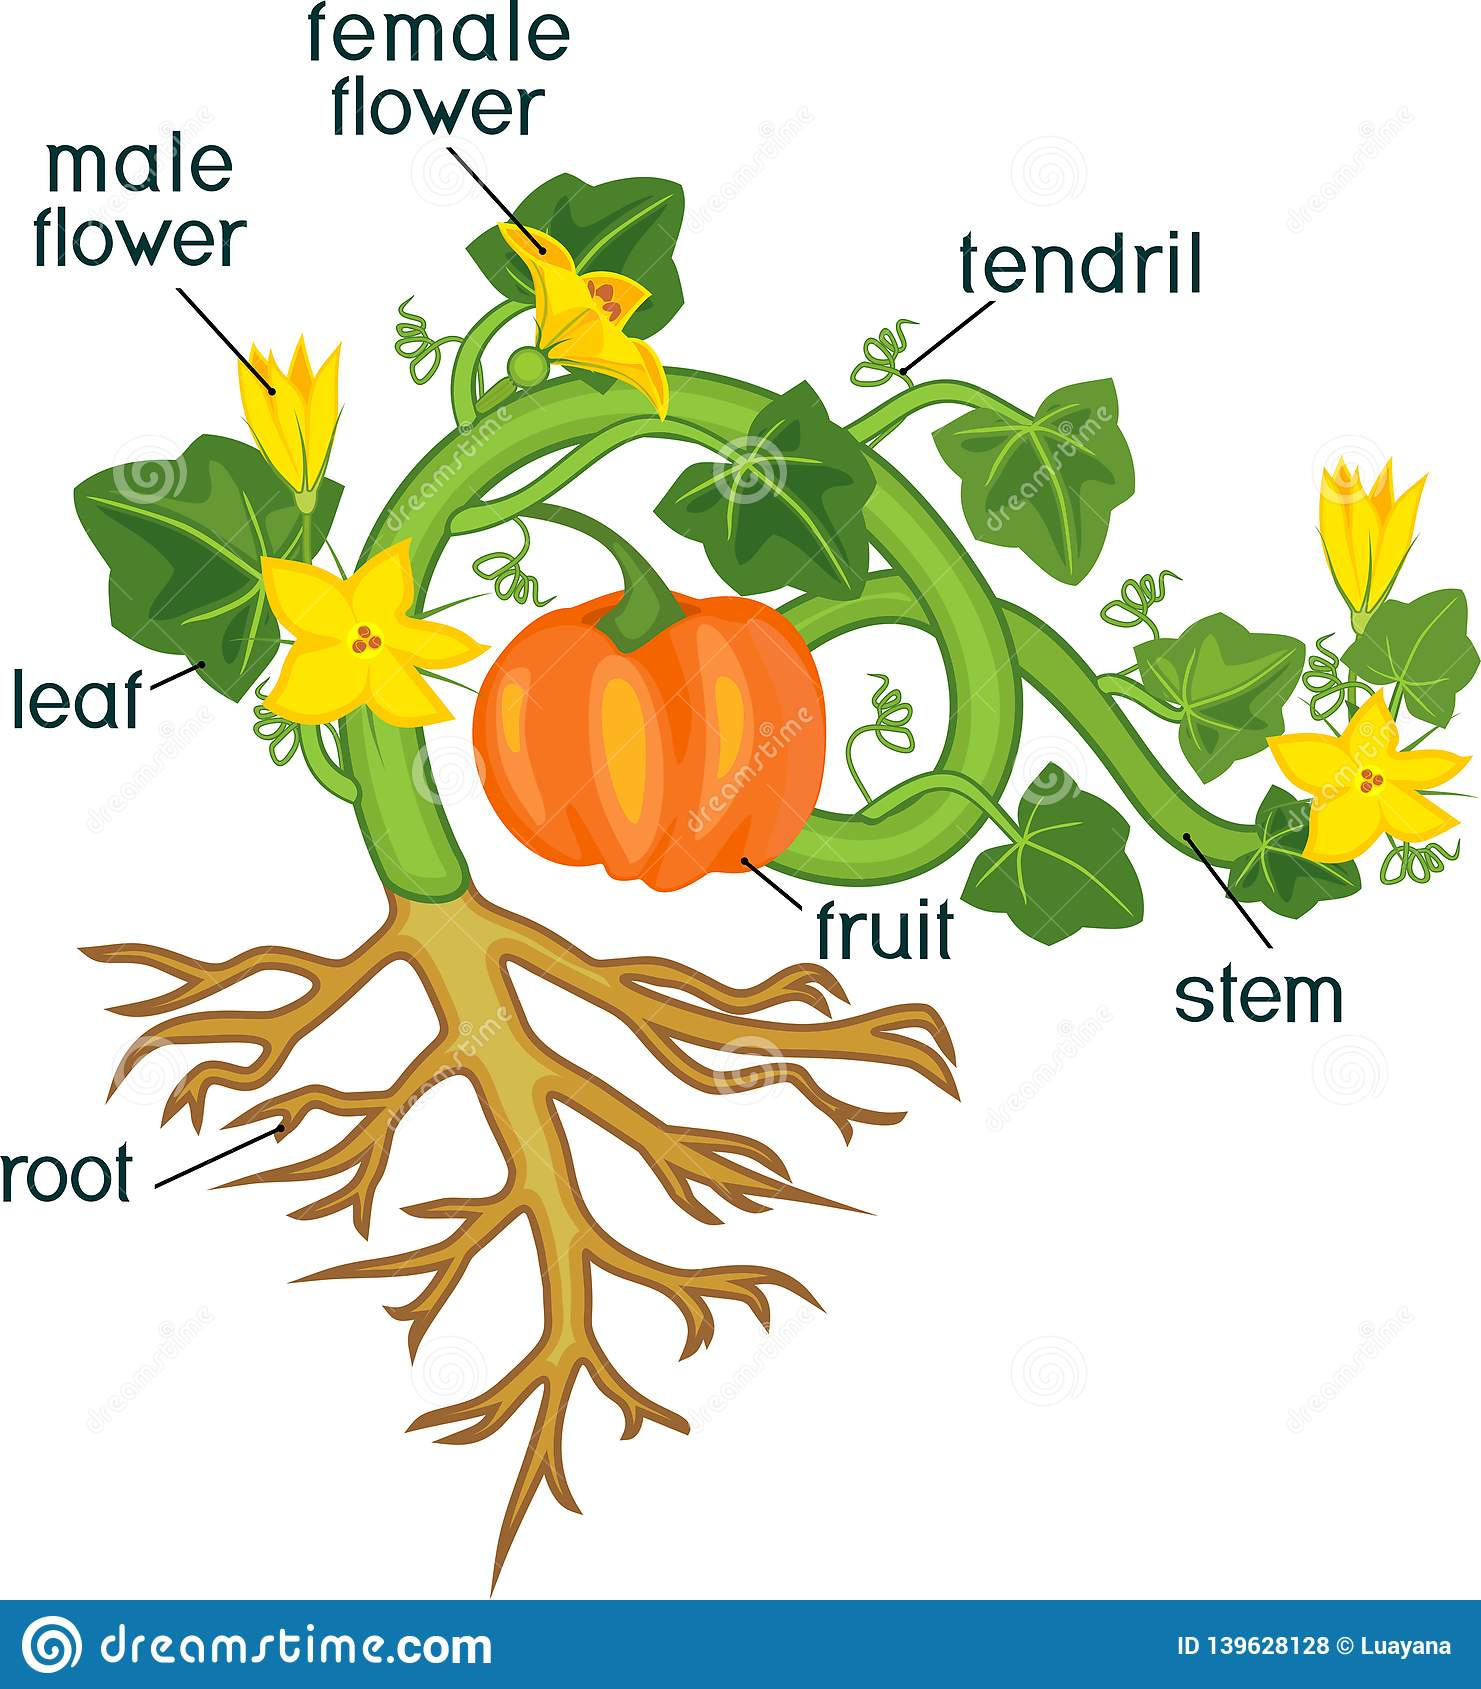 Parts Of Plant Morphology Of Pumpkin Plant With Fruit Green Leaves Root System And Titles Stock Vector Illustration Of Ripe Isolated 139628128